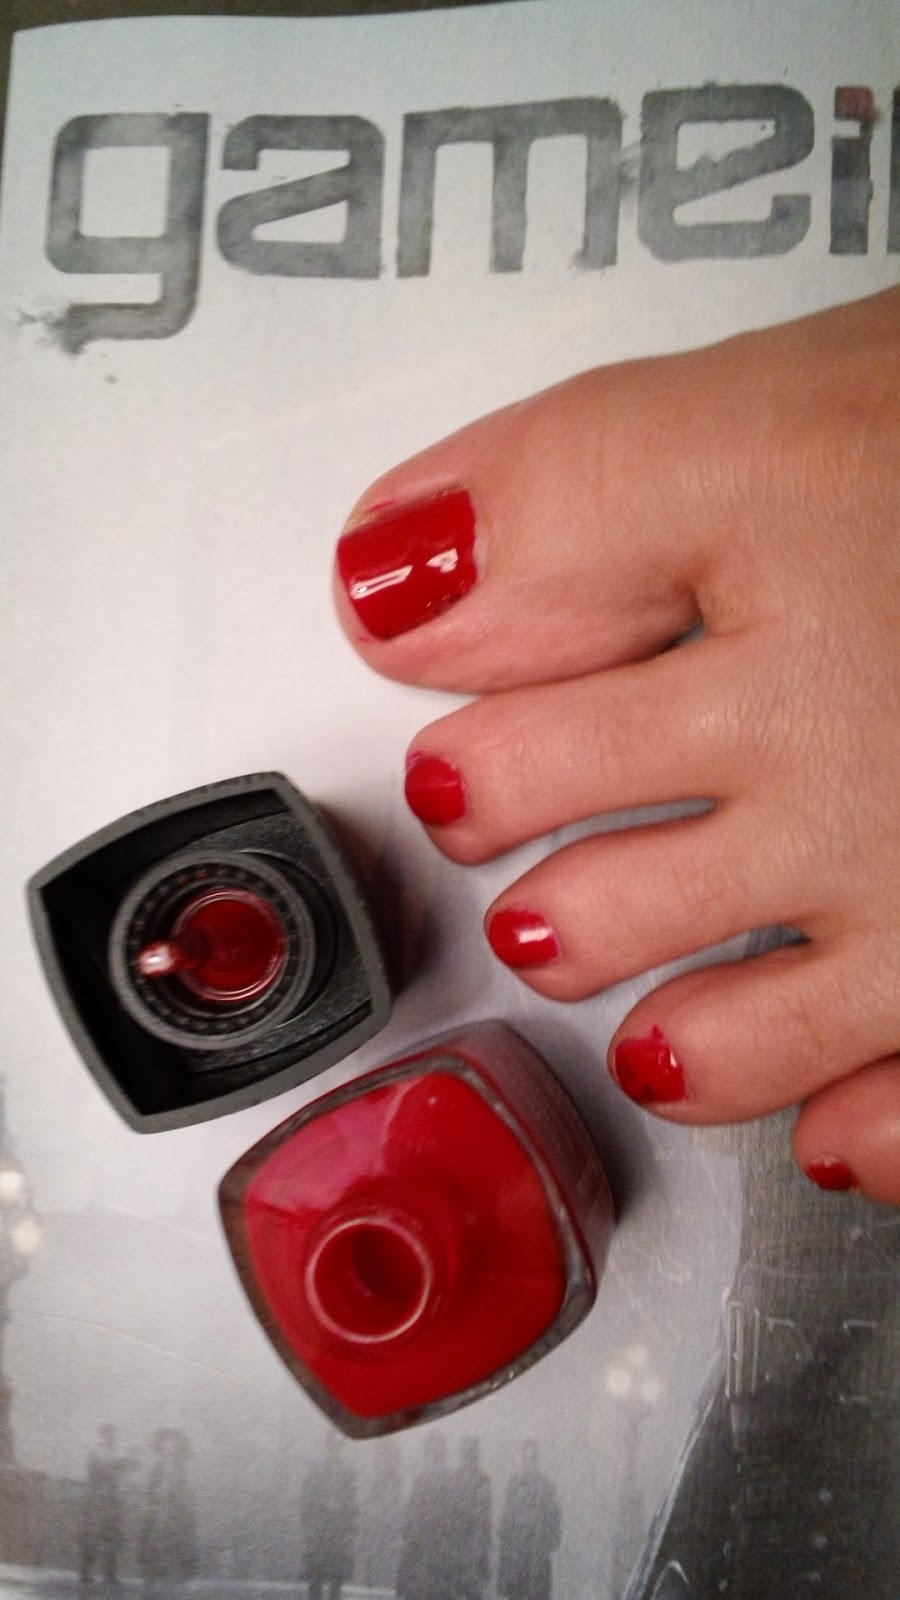 Makeup University Inc: Dr\'s Remedy Enriched Nail Polish in Remedy Red